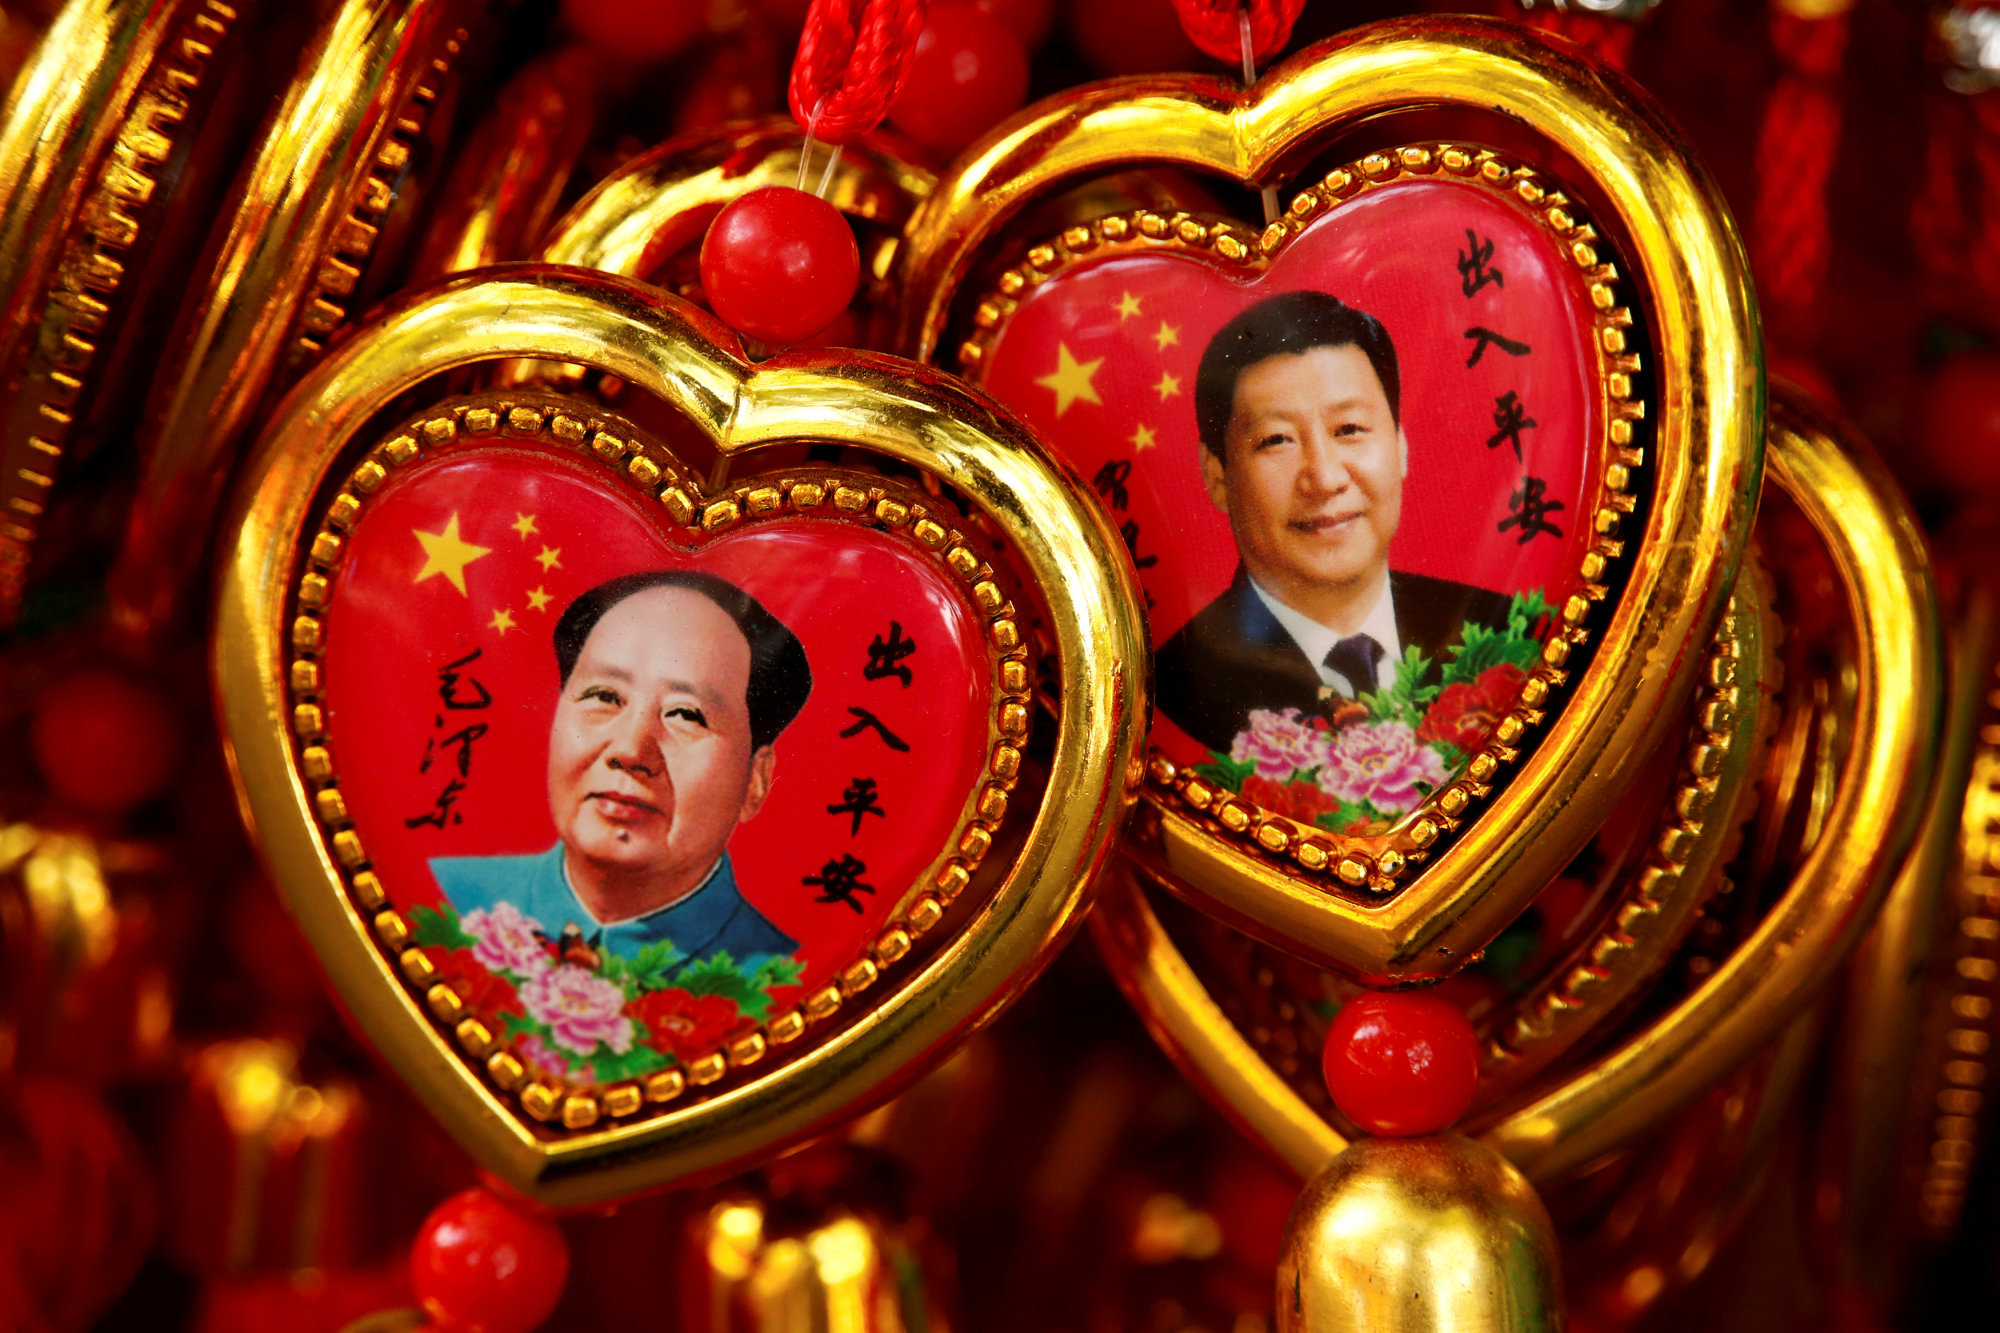 With 'Xi Jinping Thought', China's Leader Demonstrates Unprecedented Authority